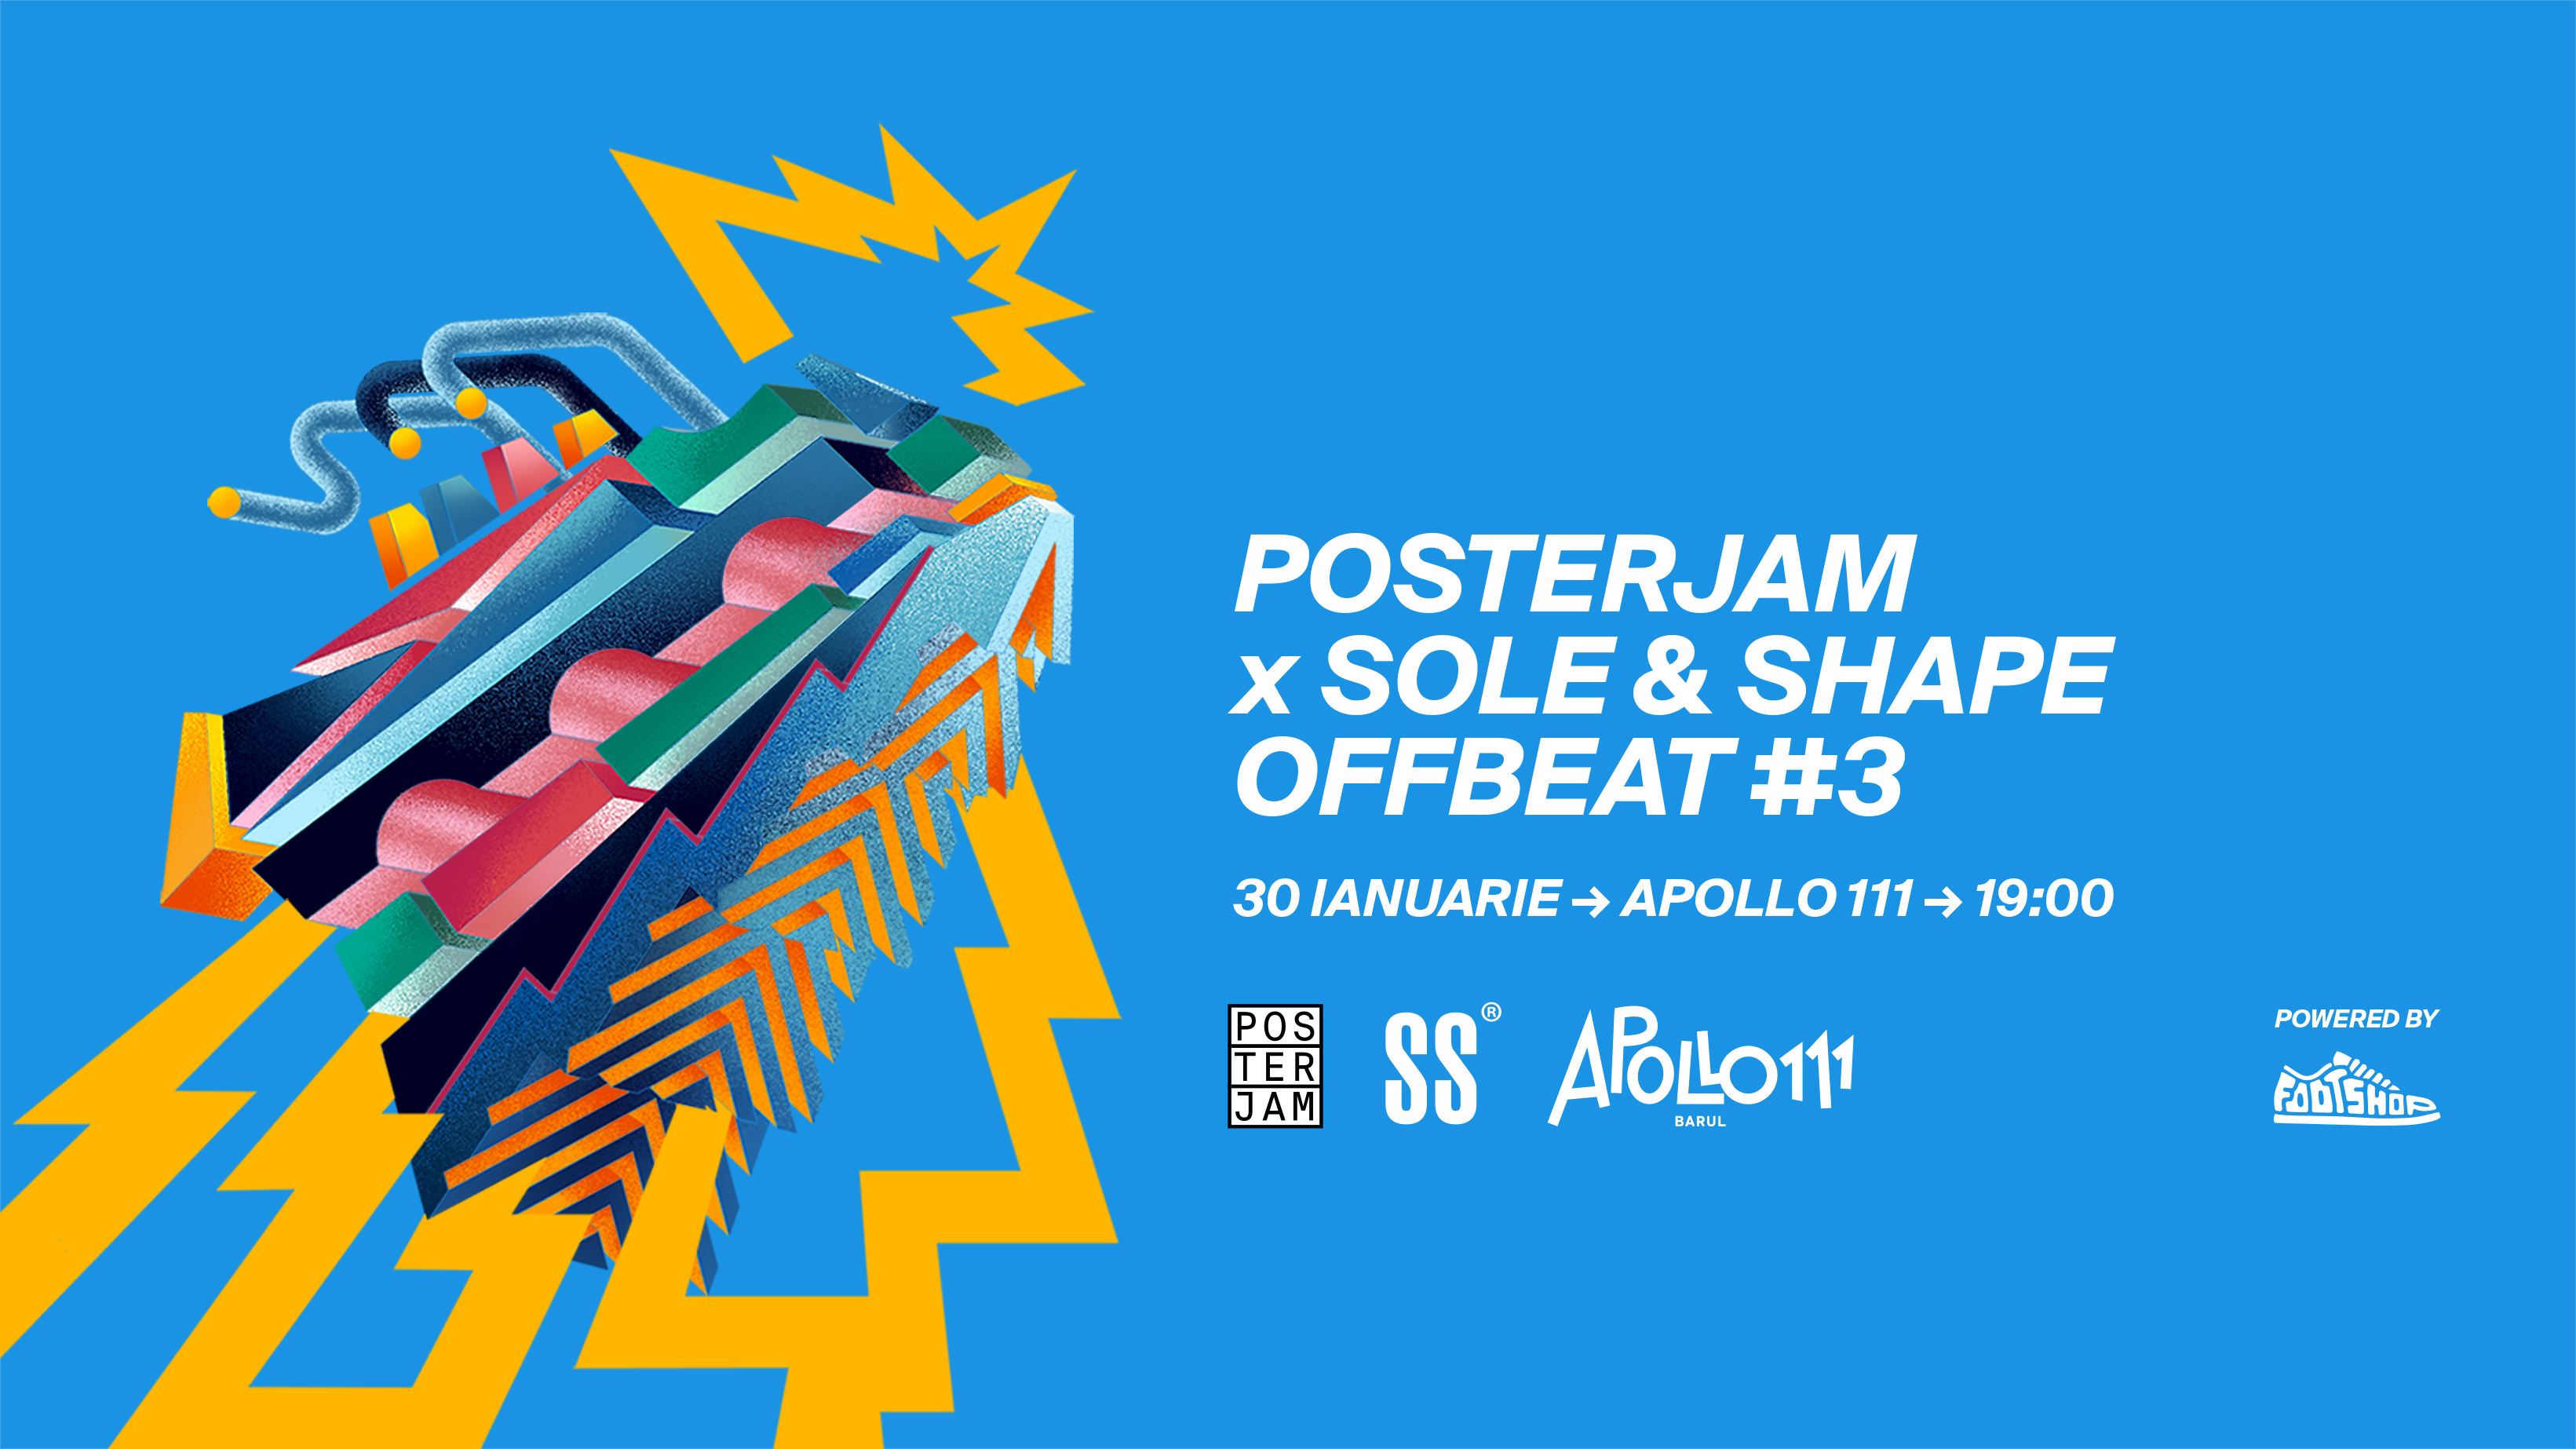 PosterJam x SOLE   SHAPE Offbeat  3 XHIBITION powered by Footshop cc4c994e1